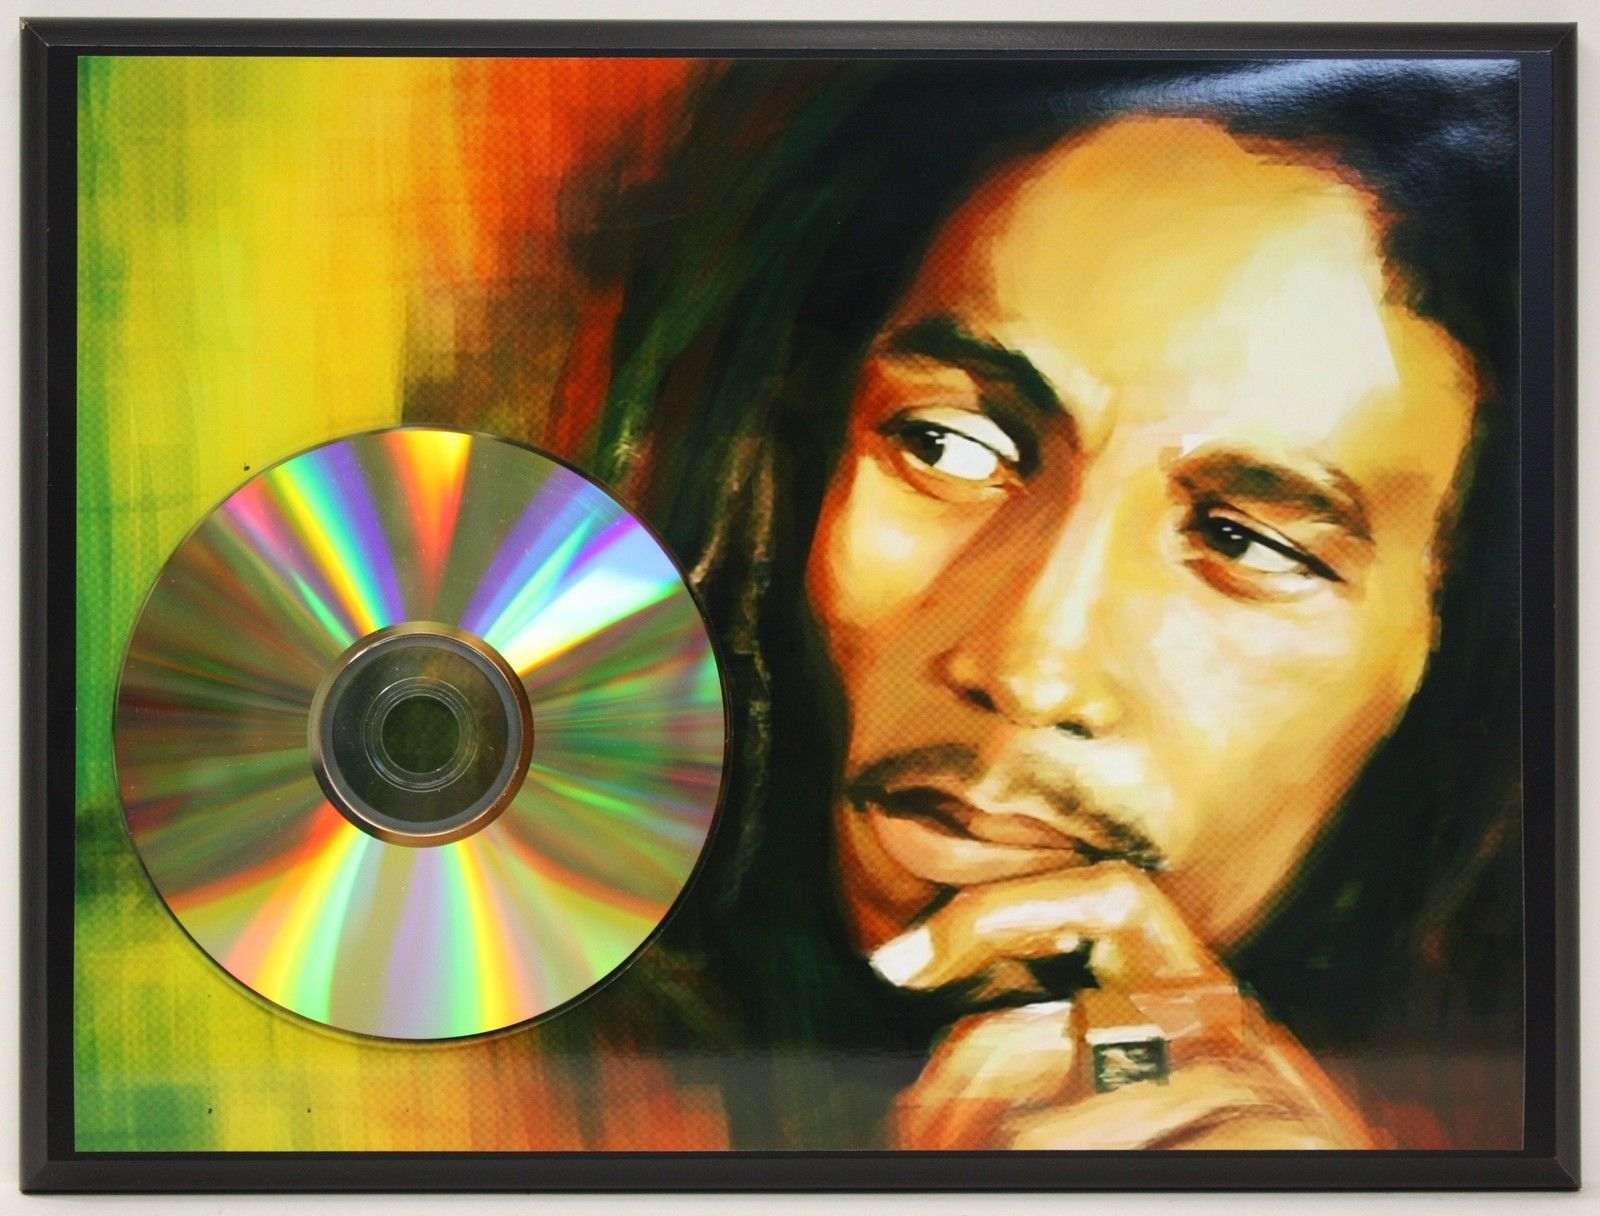 bob marley 24kt gold cd ltd edition plaque free u s priority shipping gold record awards. Black Bedroom Furniture Sets. Home Design Ideas